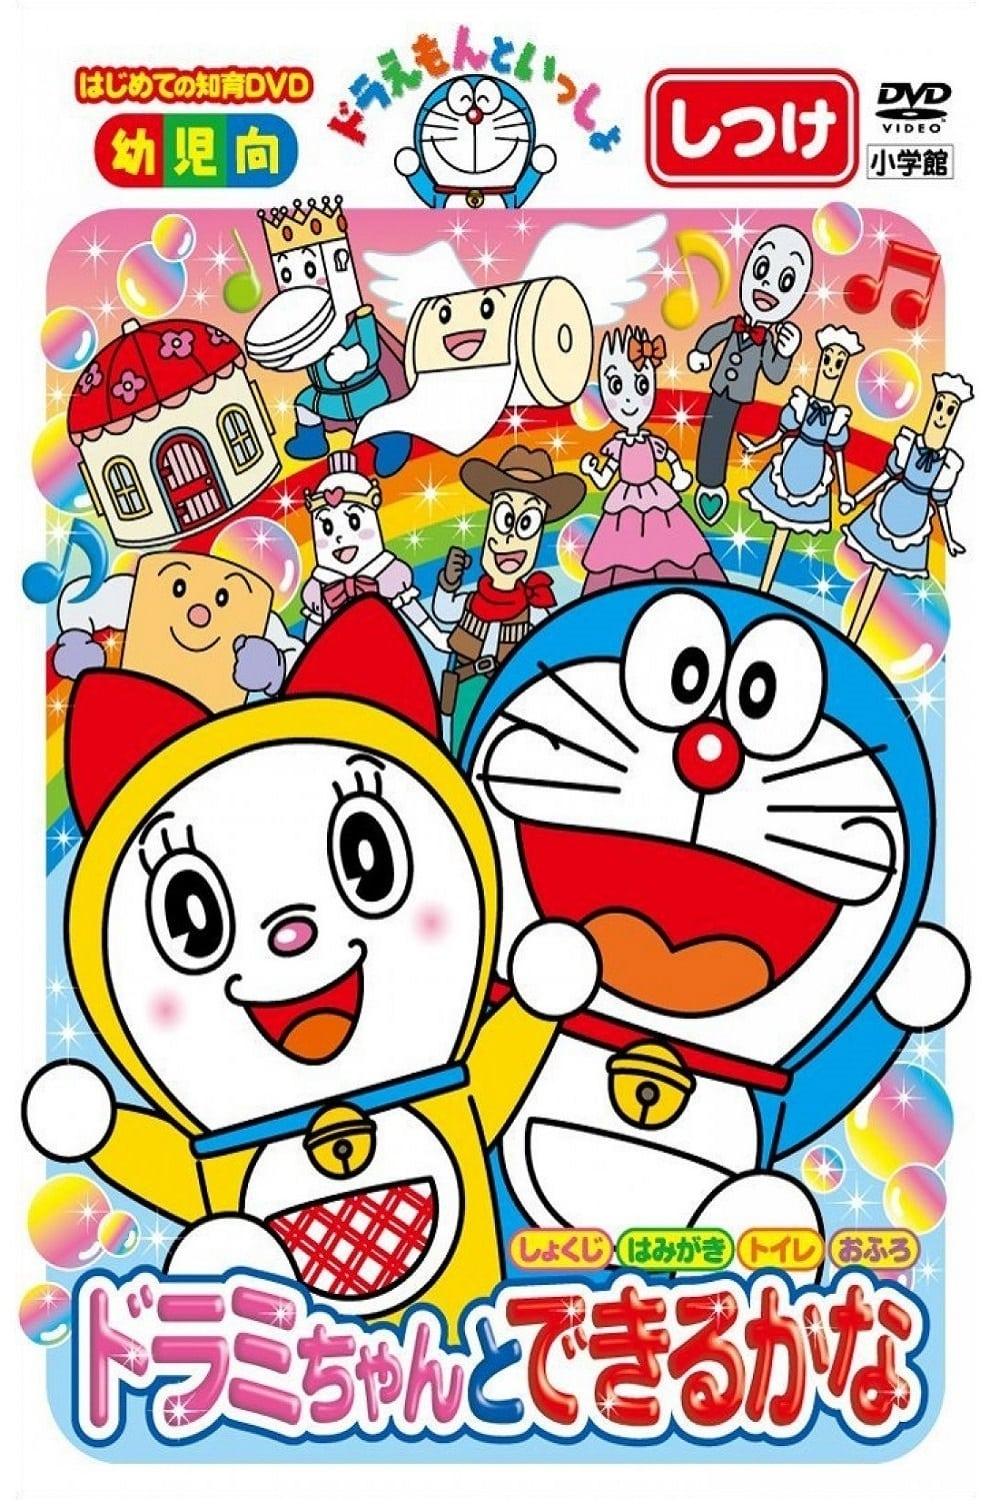 Doraemon let's go: You can do with Dorami-chan (2008)